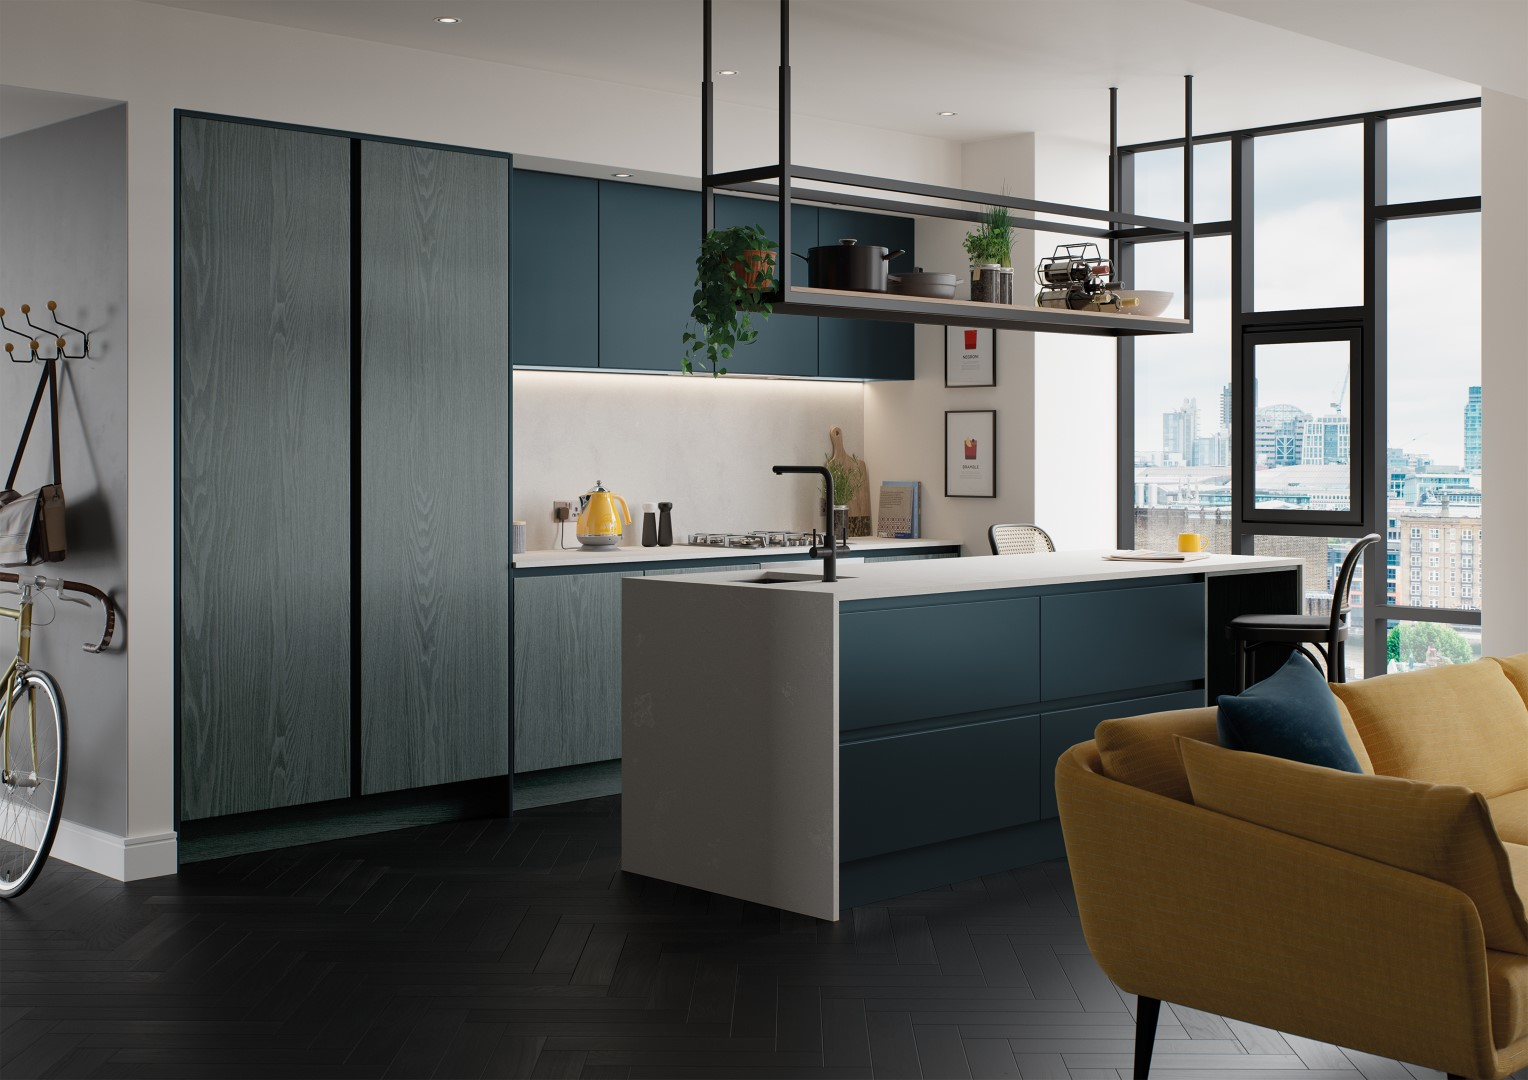 Kelso Stained Pacific Blue and Zola Matte Marine - Kitchen Design - Alan Kelly Kitchens Waterford - 5